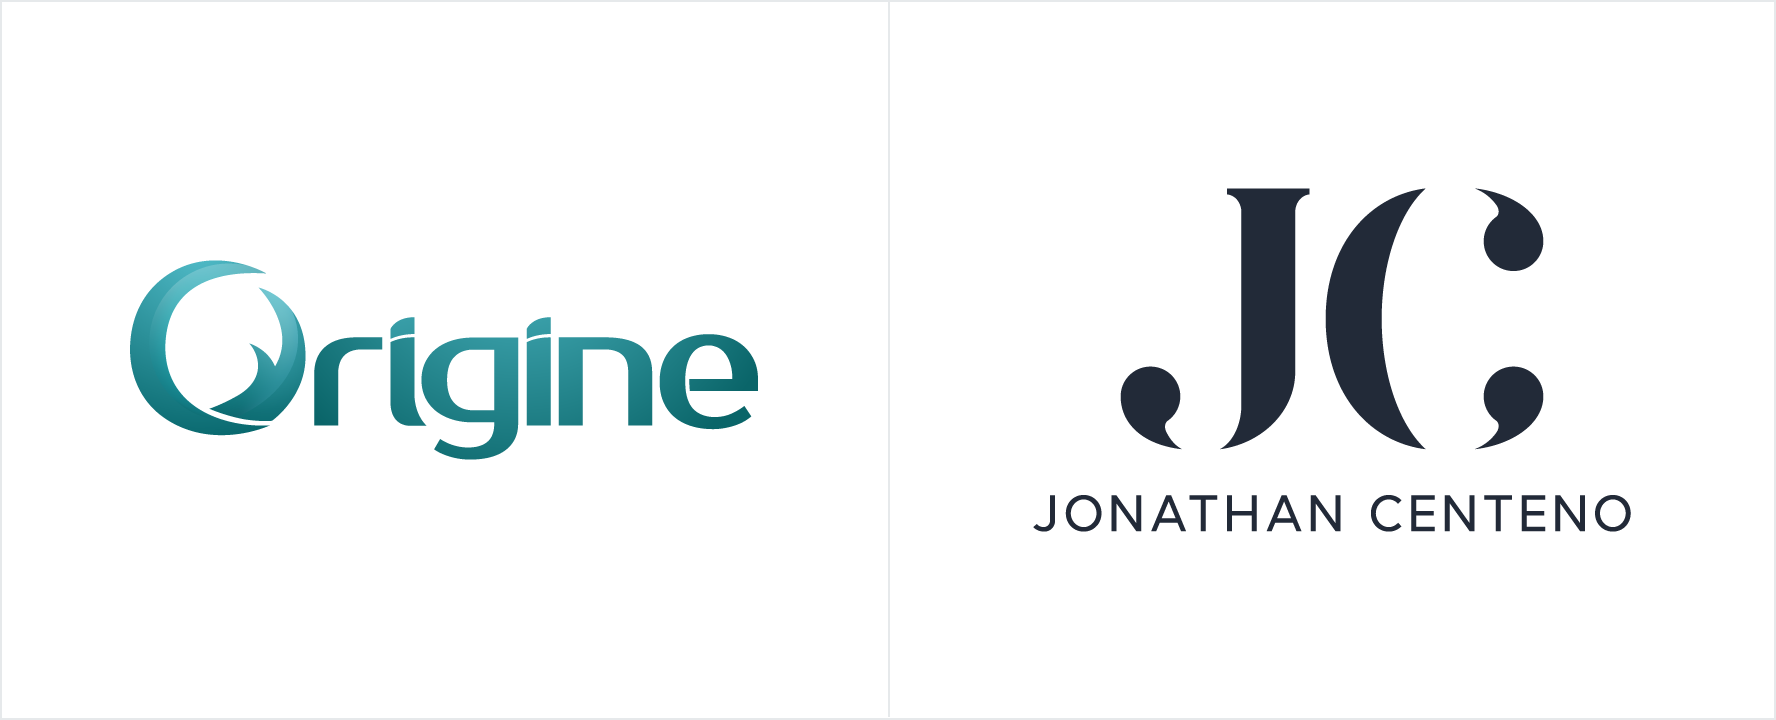 Comparison of the old logo vs. the new one